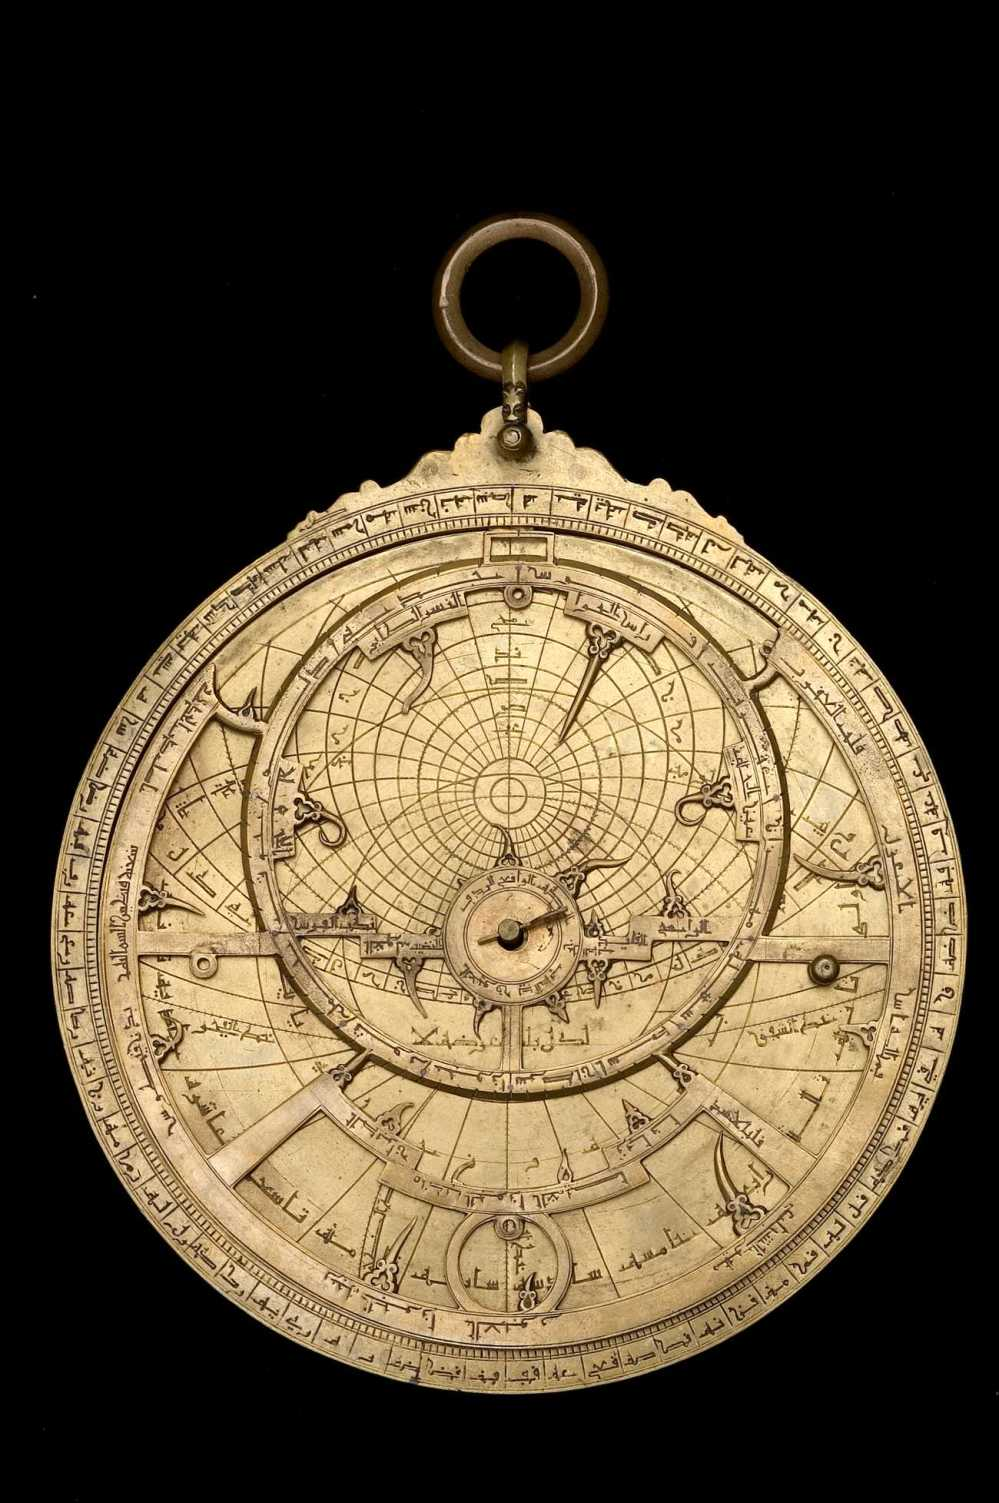 preview image for Astrolabe with Universal Projection, North African, 13th Century?